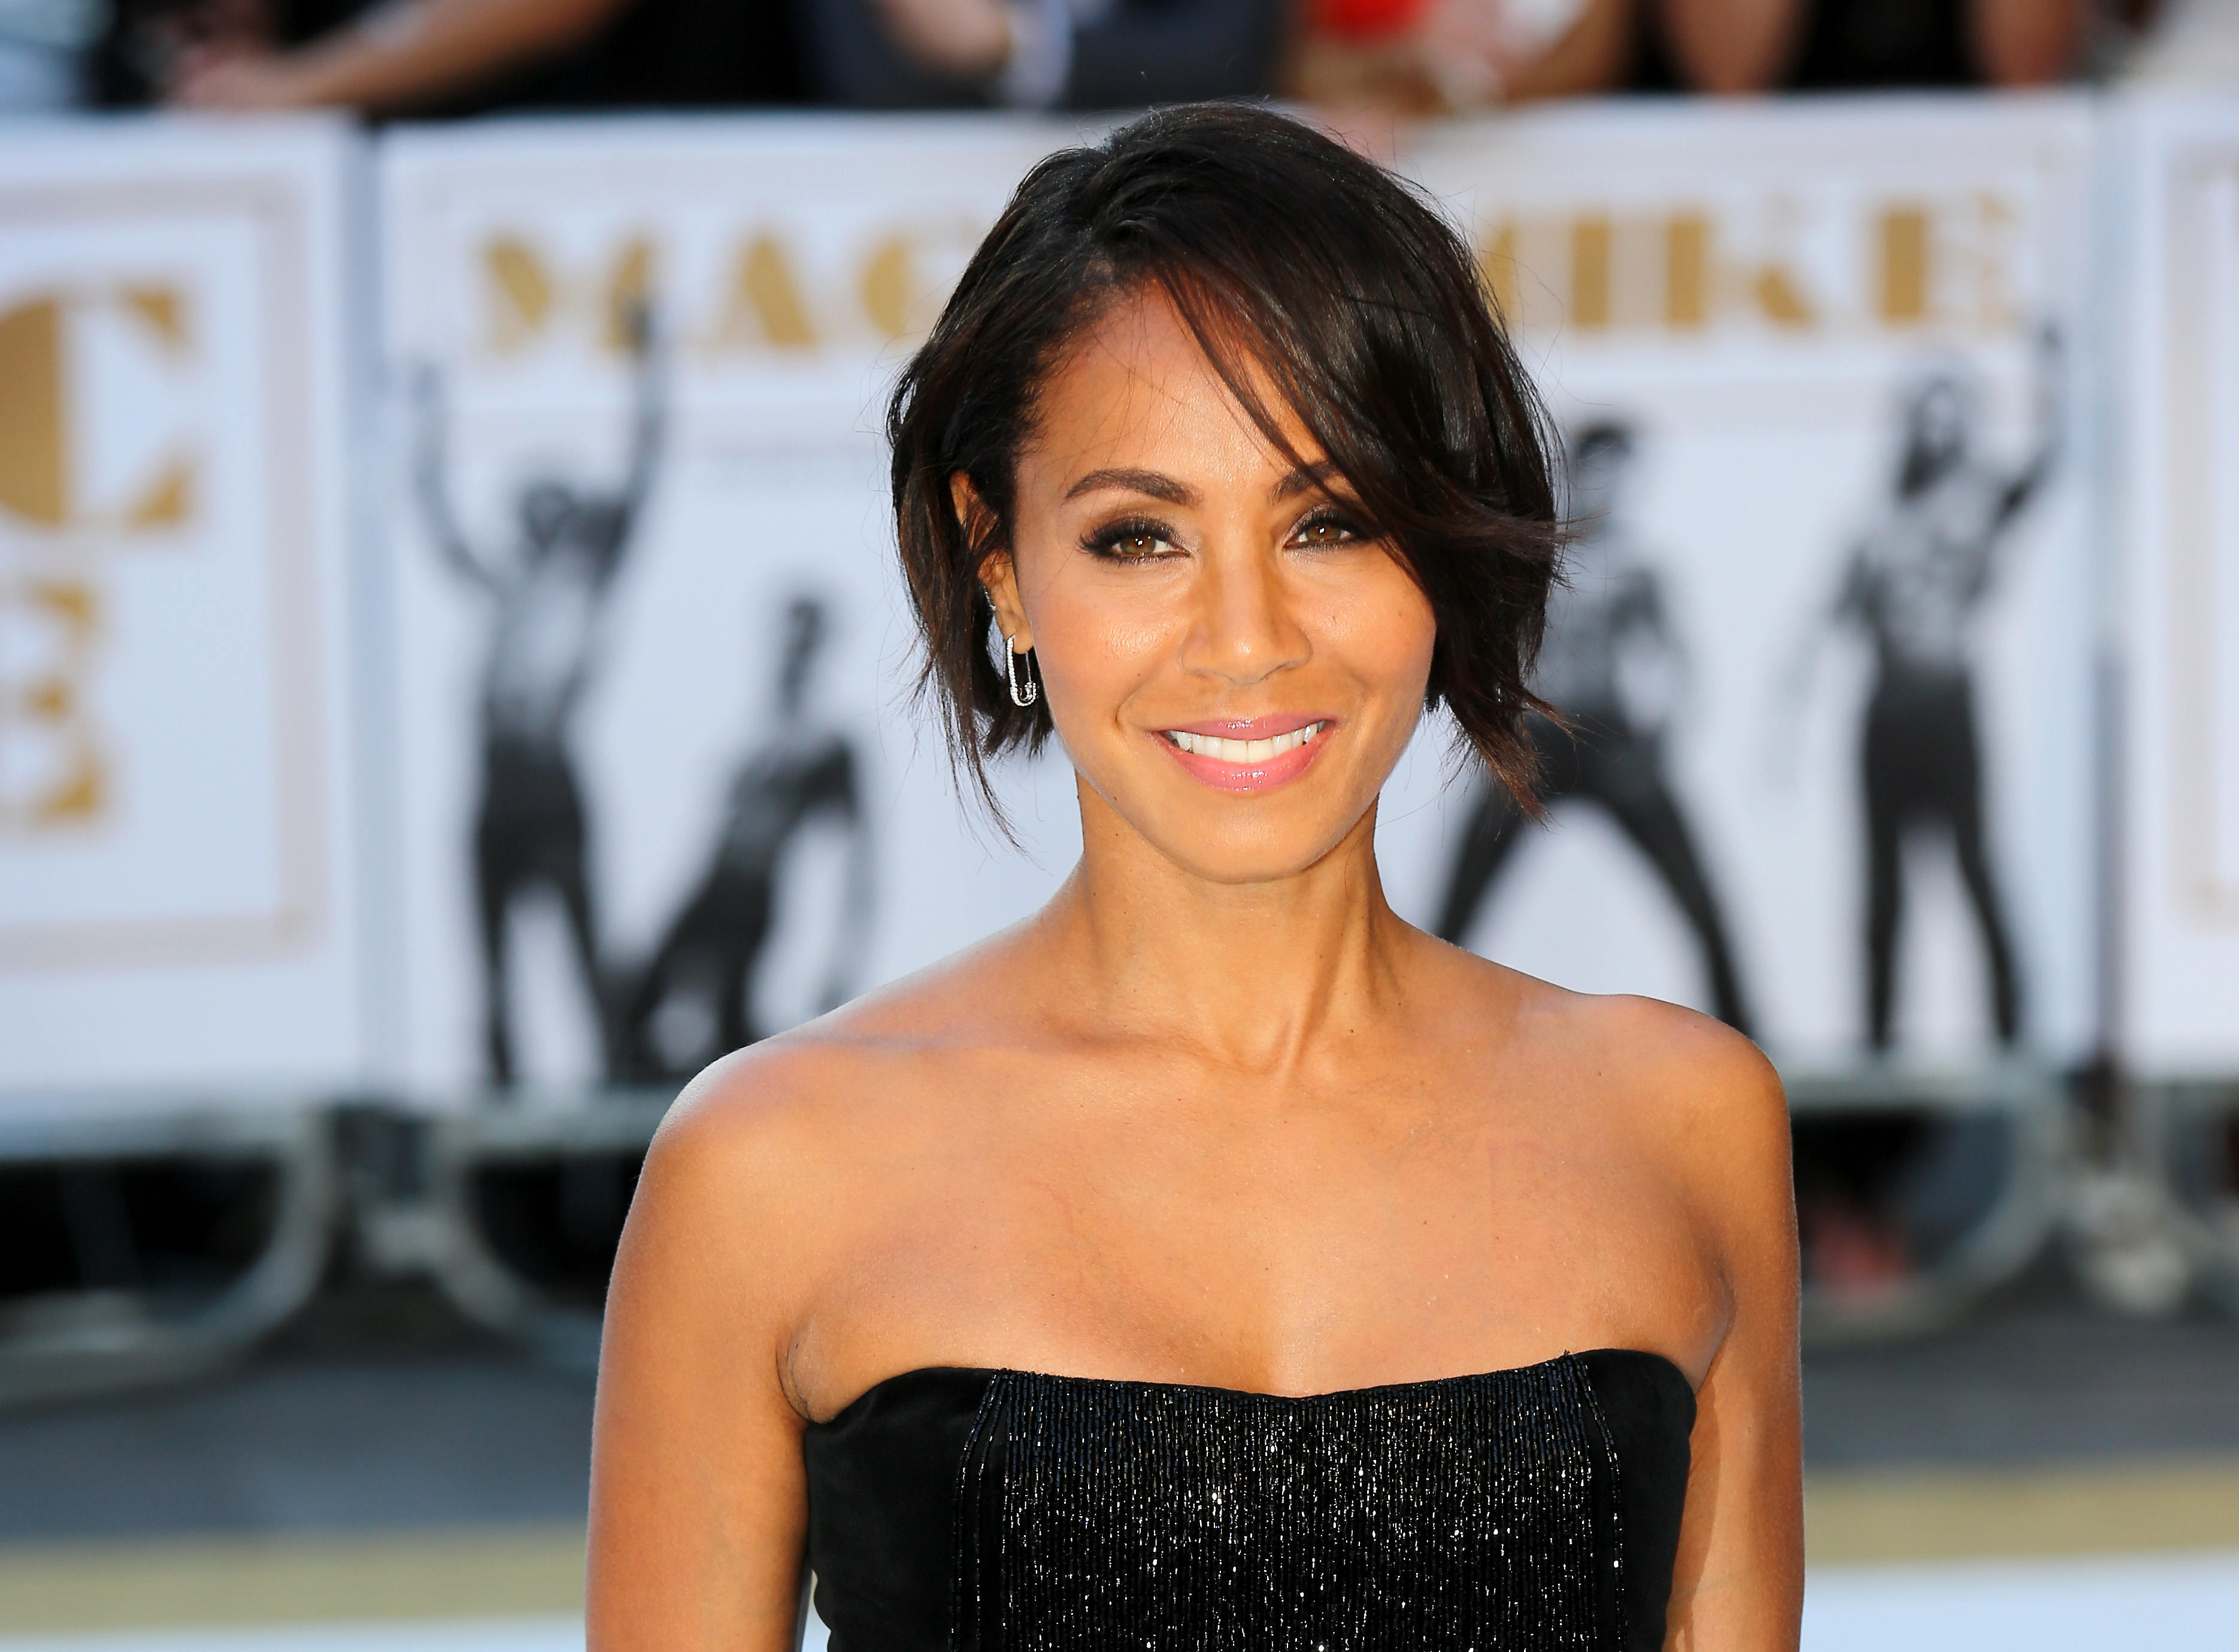 'Proud' Jada Pinkett Smith gives nod to this year's diverse Oscar nominations